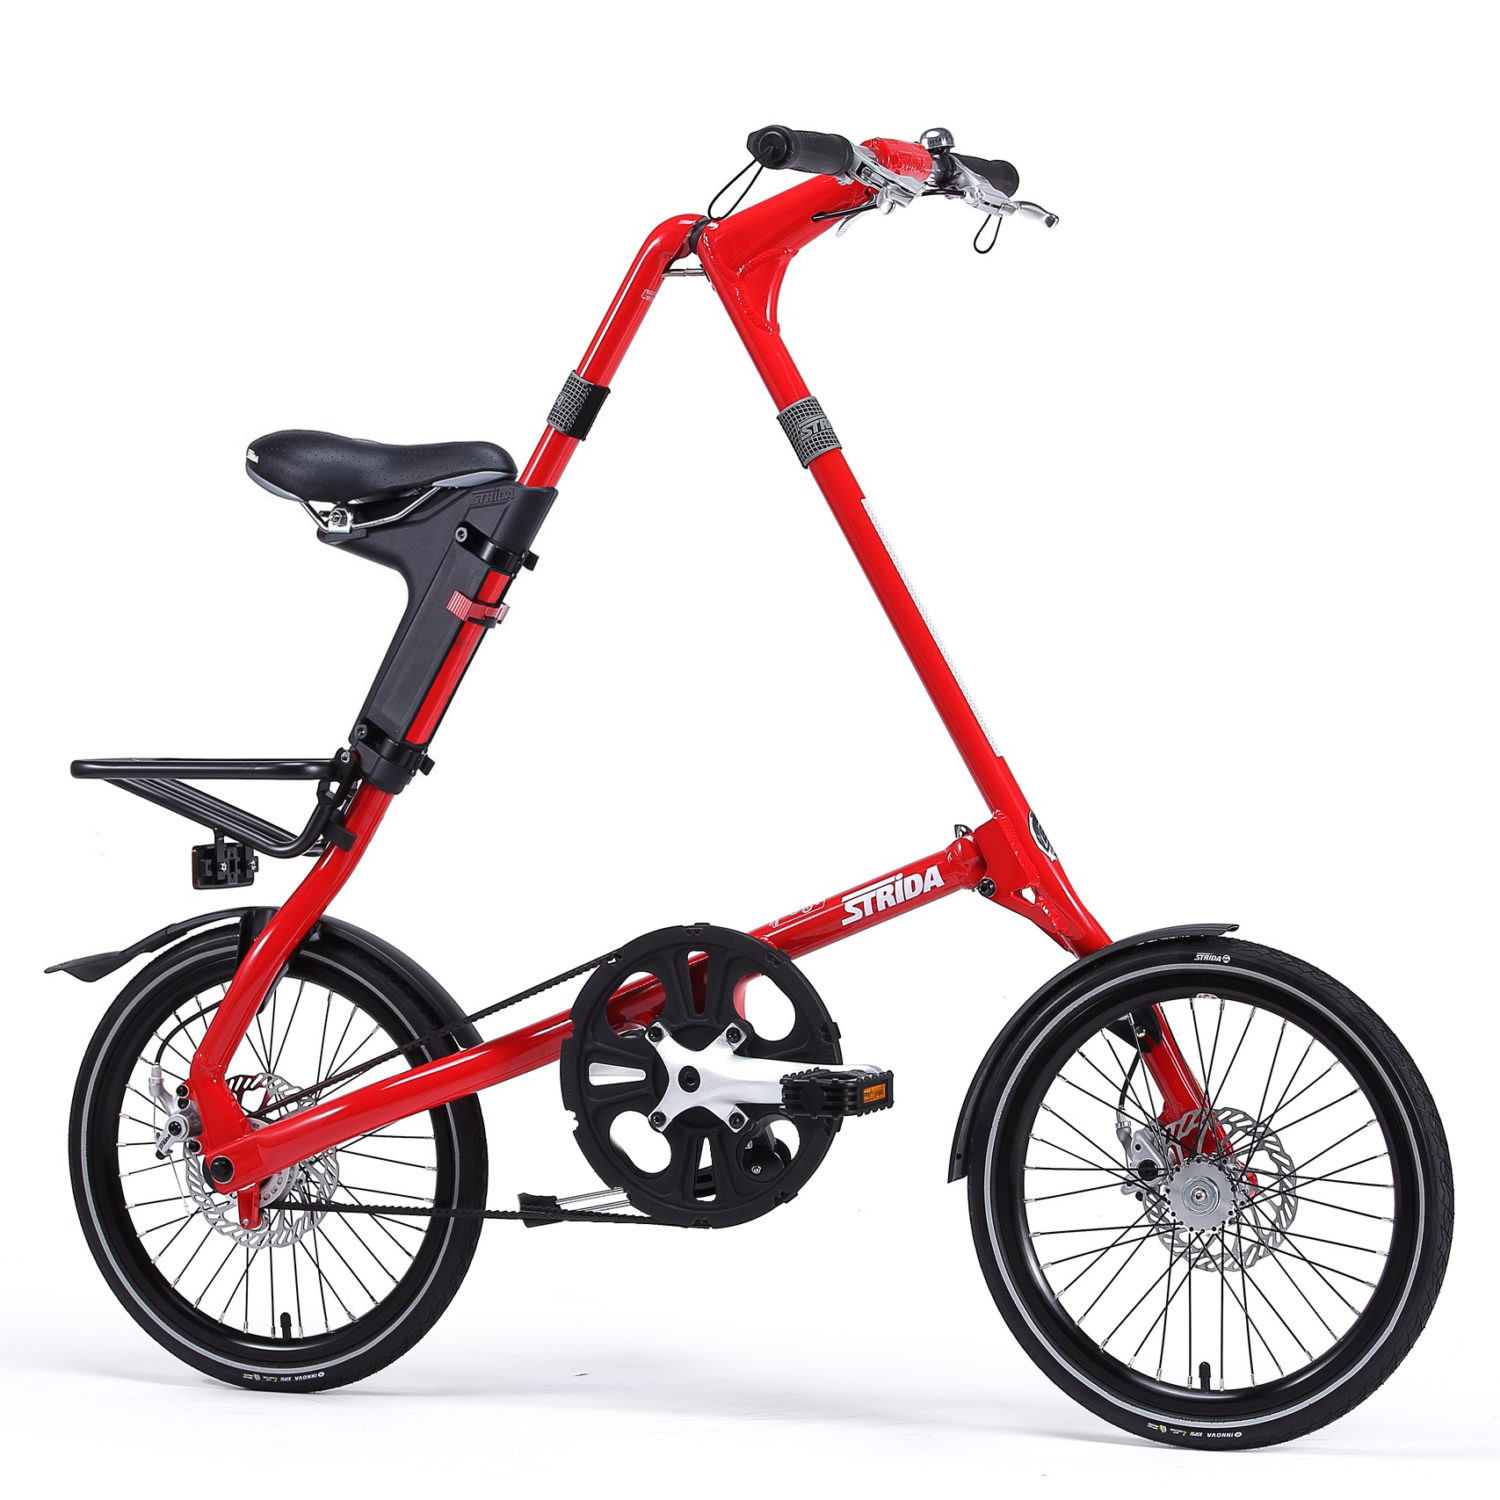 STRIDA SX Red Devil - 18 inch - bike - Buy foldable bikes - Buy folding bicycle - Buy folding bike - Buy folding bikes - buying - collapsible bike - Design bike - Design folding bike - foldable bike - Folding bicycle - Folding bike - Folding bike shop - Folding bikes - for sale - Lightweight - new - shop - Single speed - strida - Strida design folding bike - sx - Triangular - Triangular folding bike - Triangular shaped - unique folding bike